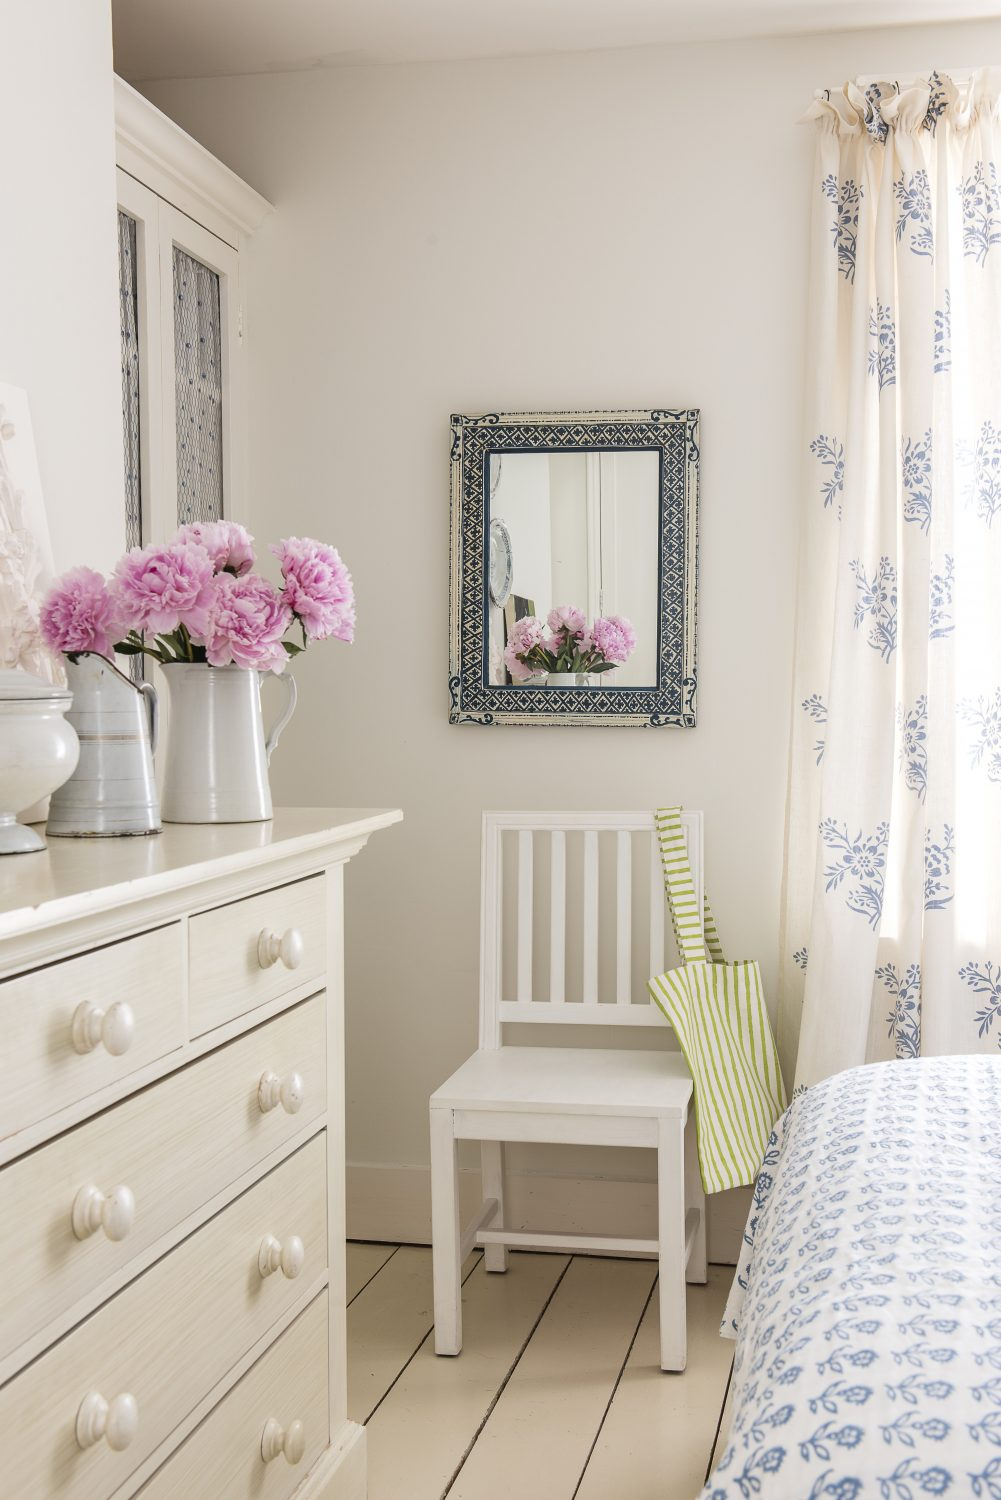 The bedroom combines white-painted furniture and floorboards with blue and white Room 100 fabrics